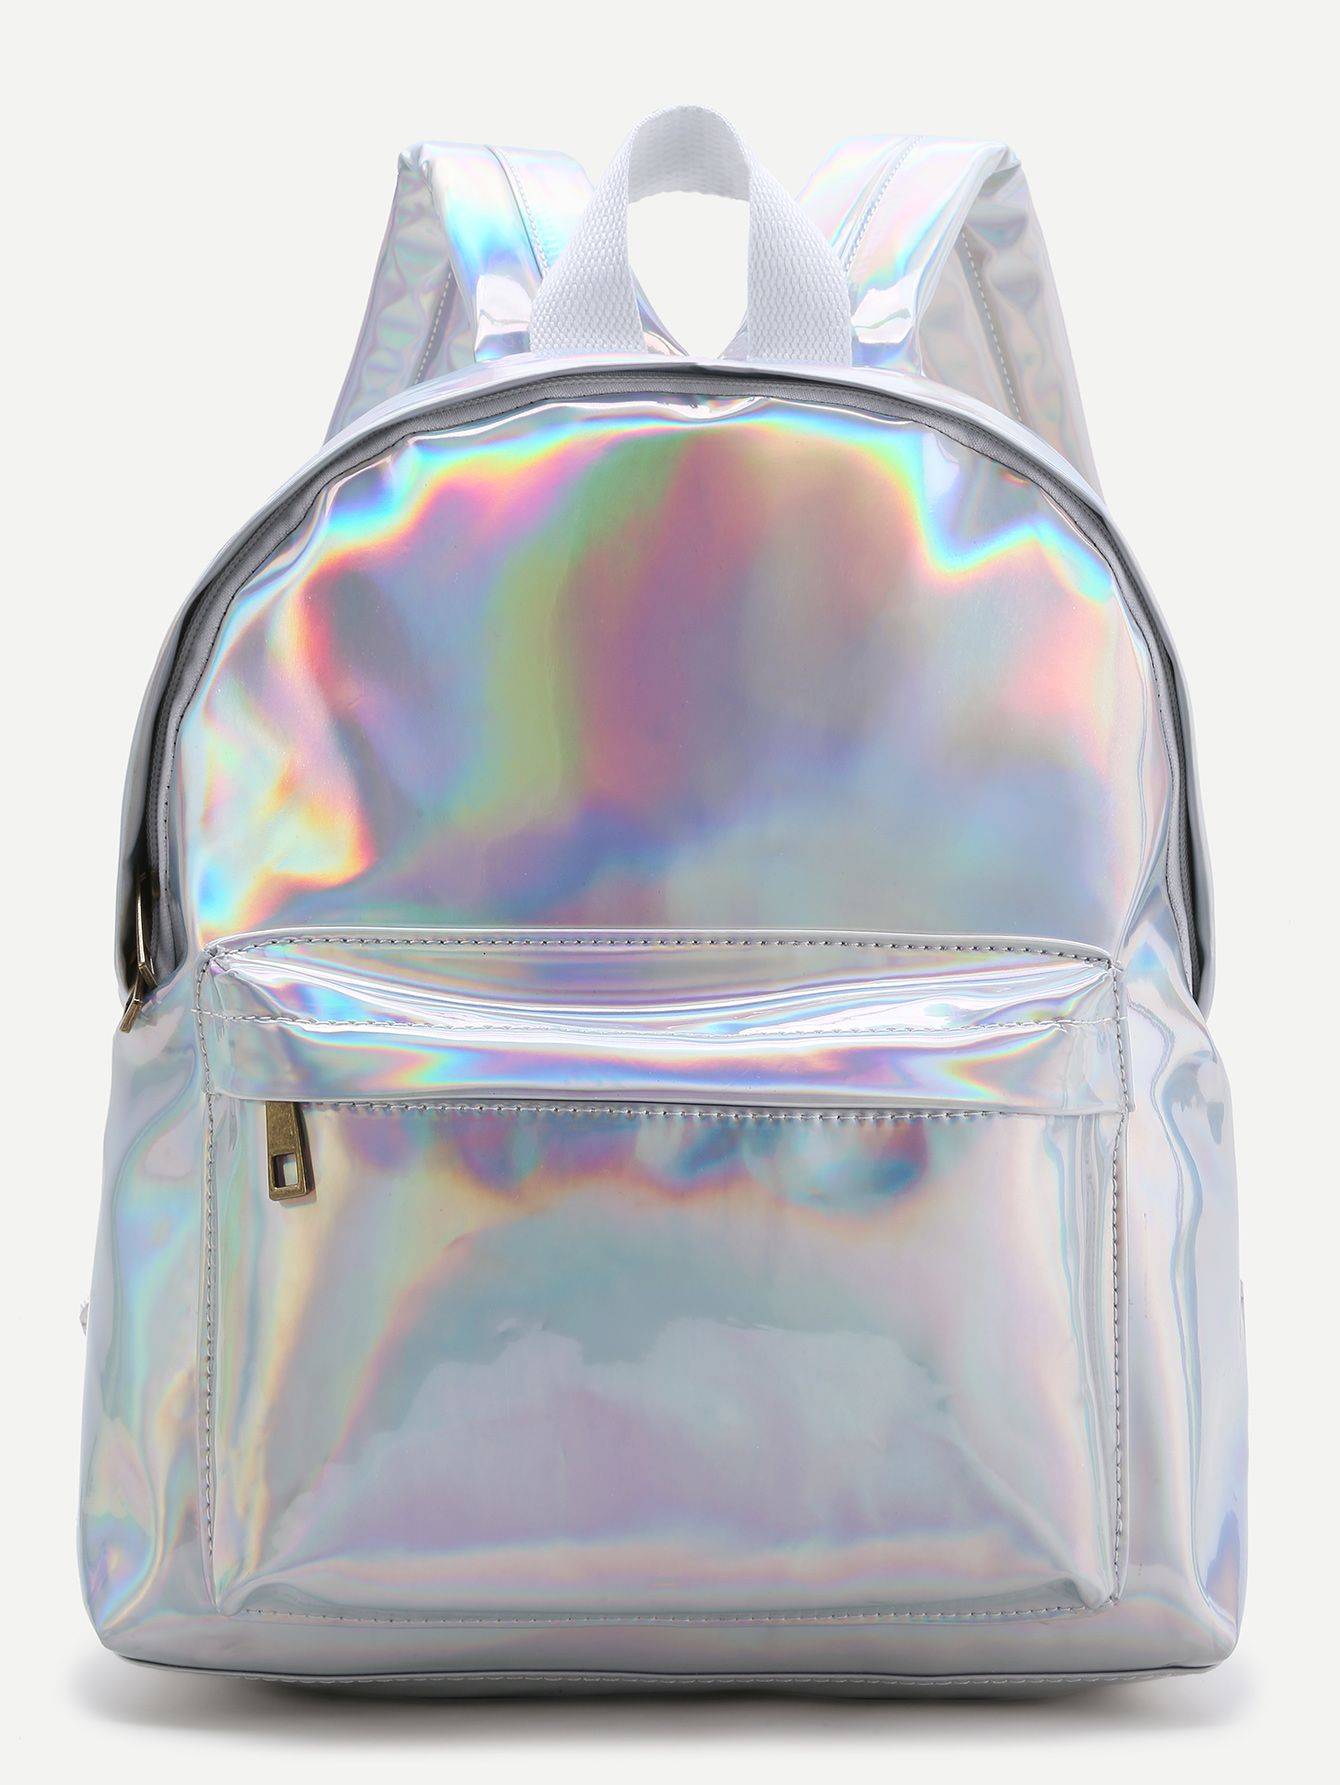 ad66e834e Shop Sliver Front Pocket PU Backpack online. SheIn offers Sliver Front  Pocket PU Backpack & more to fit your fashionable needs.